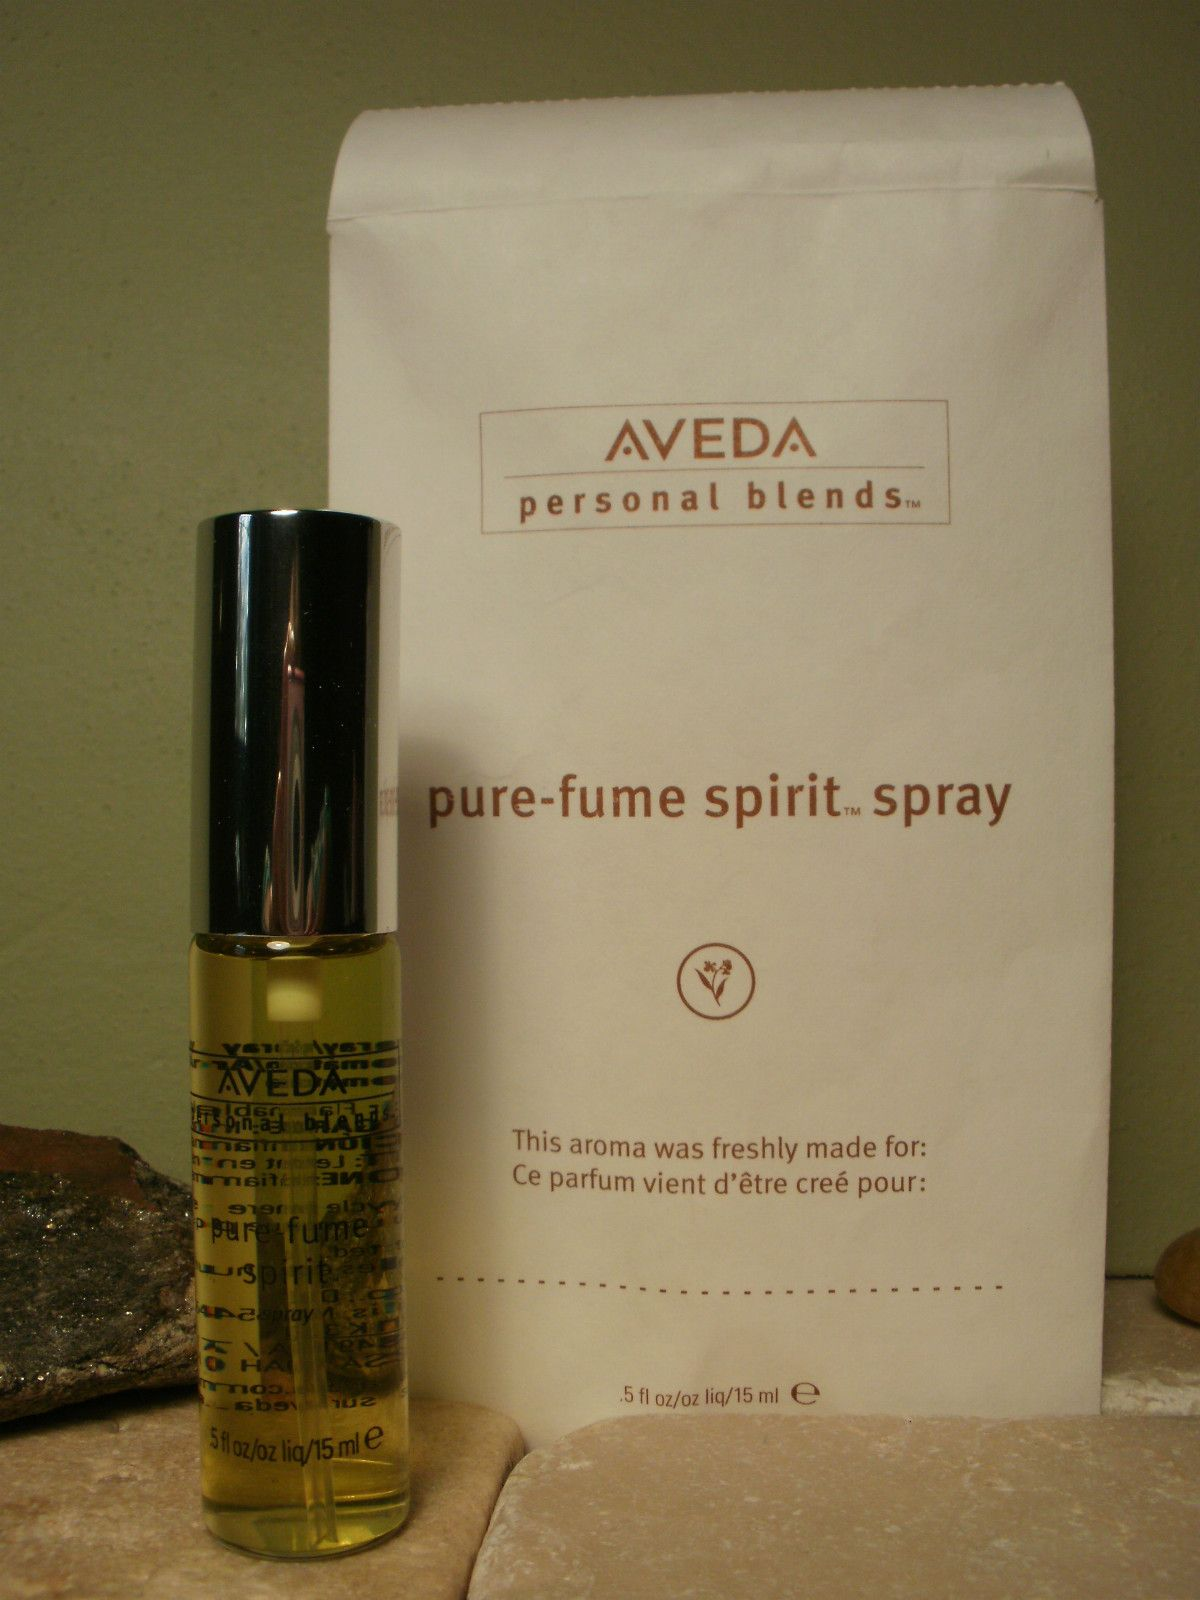 New to Aveda? Calling all new guests. Visit us for a Free